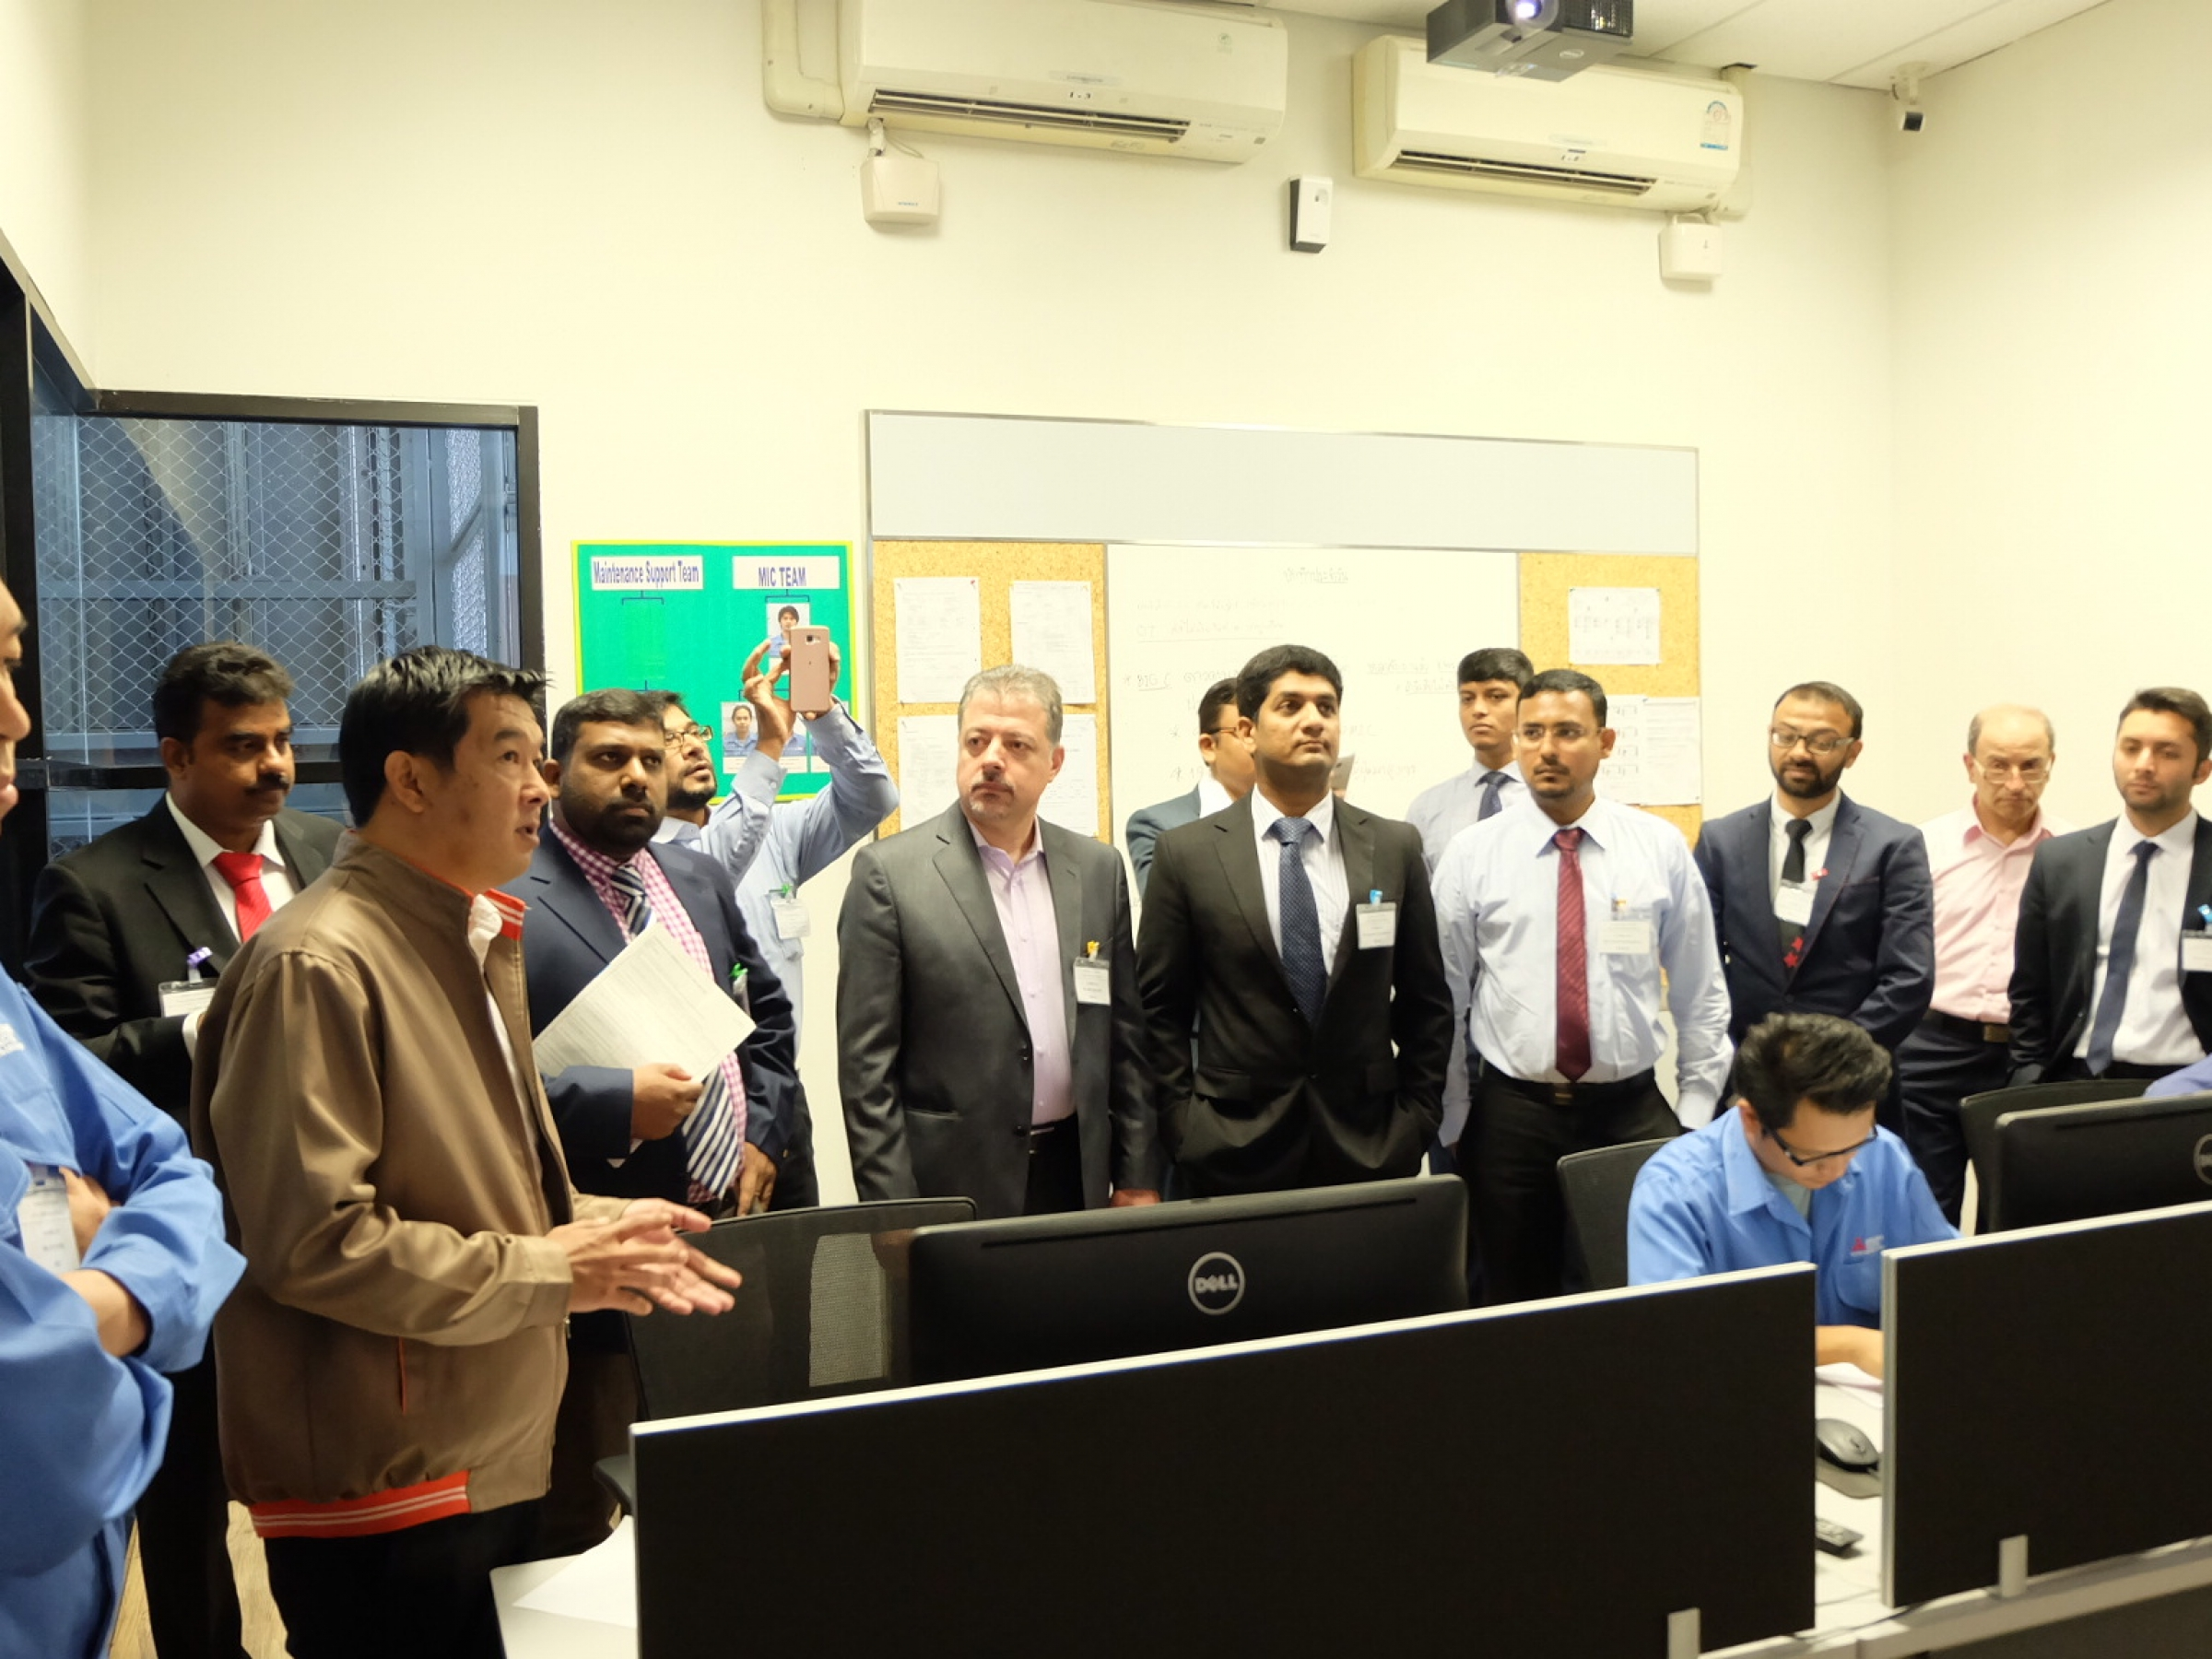 Mitsubishi Elevator Training Center welcomed 46 representatives from worldwide Joint Venture of Mitsubishi Elevator